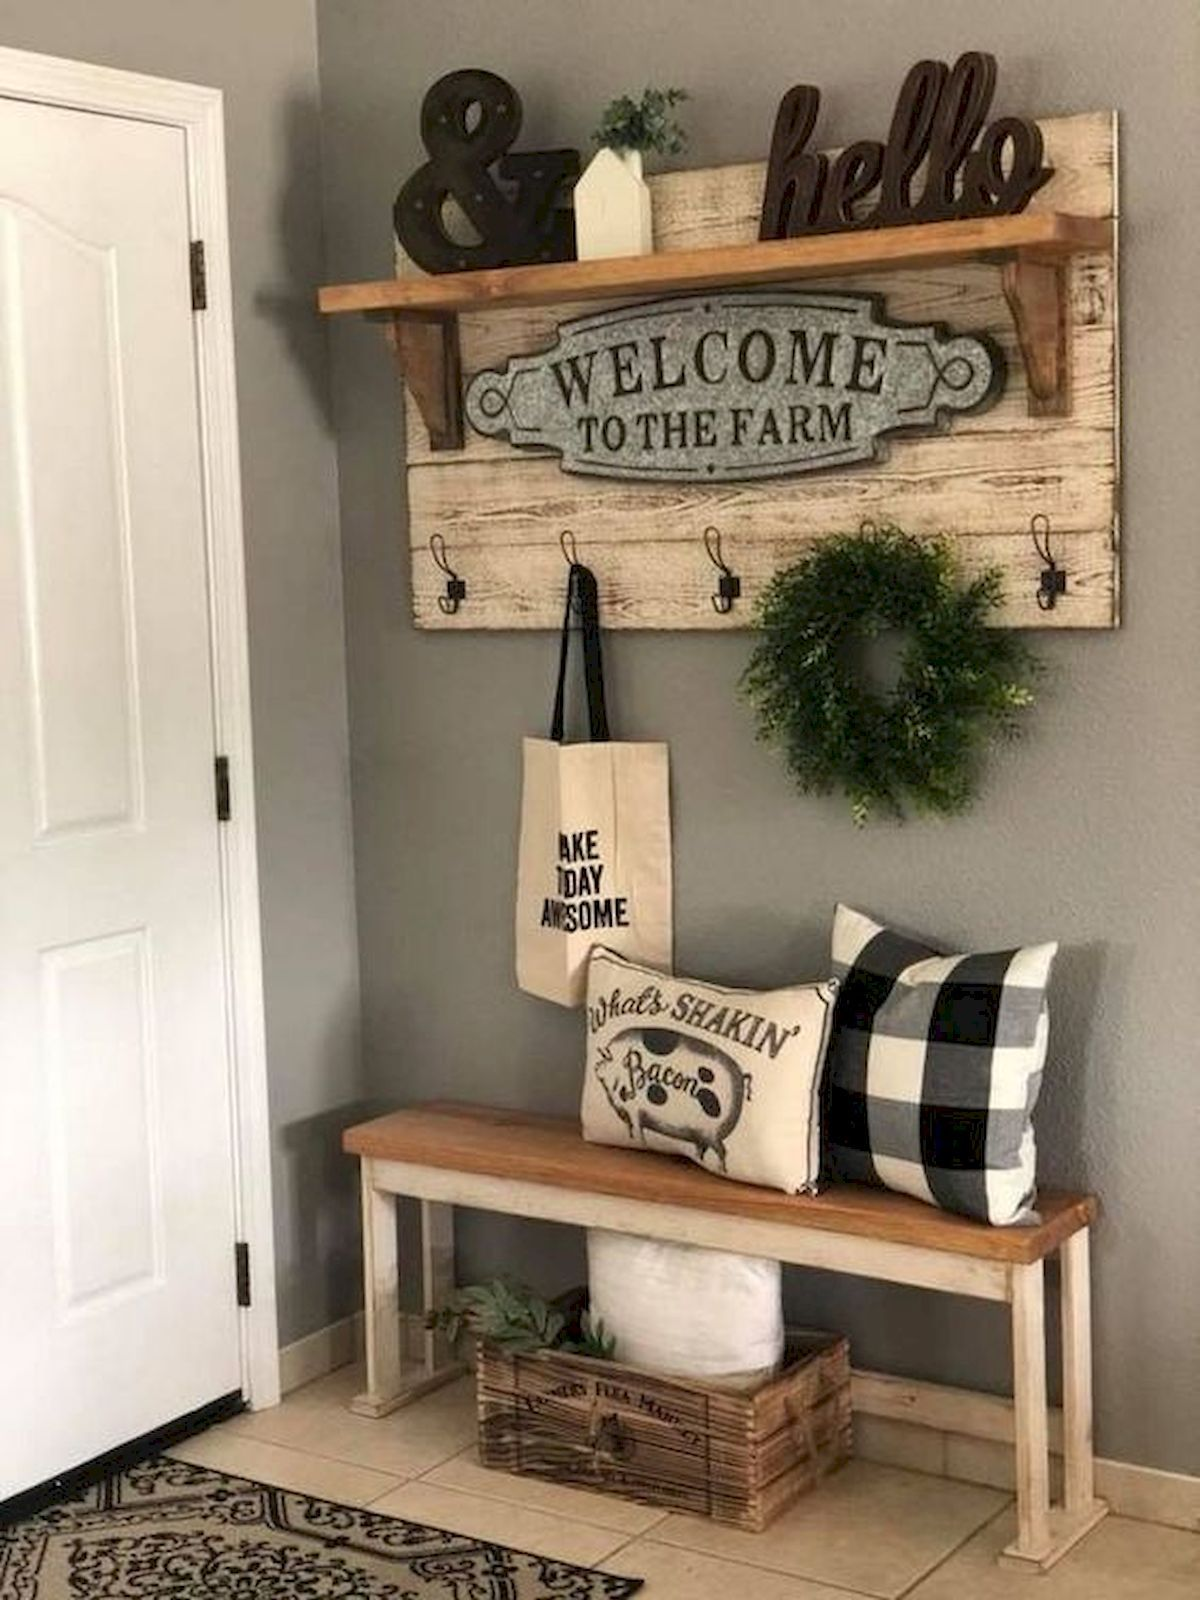 65 Wonderful DIY Rustic Home Decor Ideas #rustichomedecor